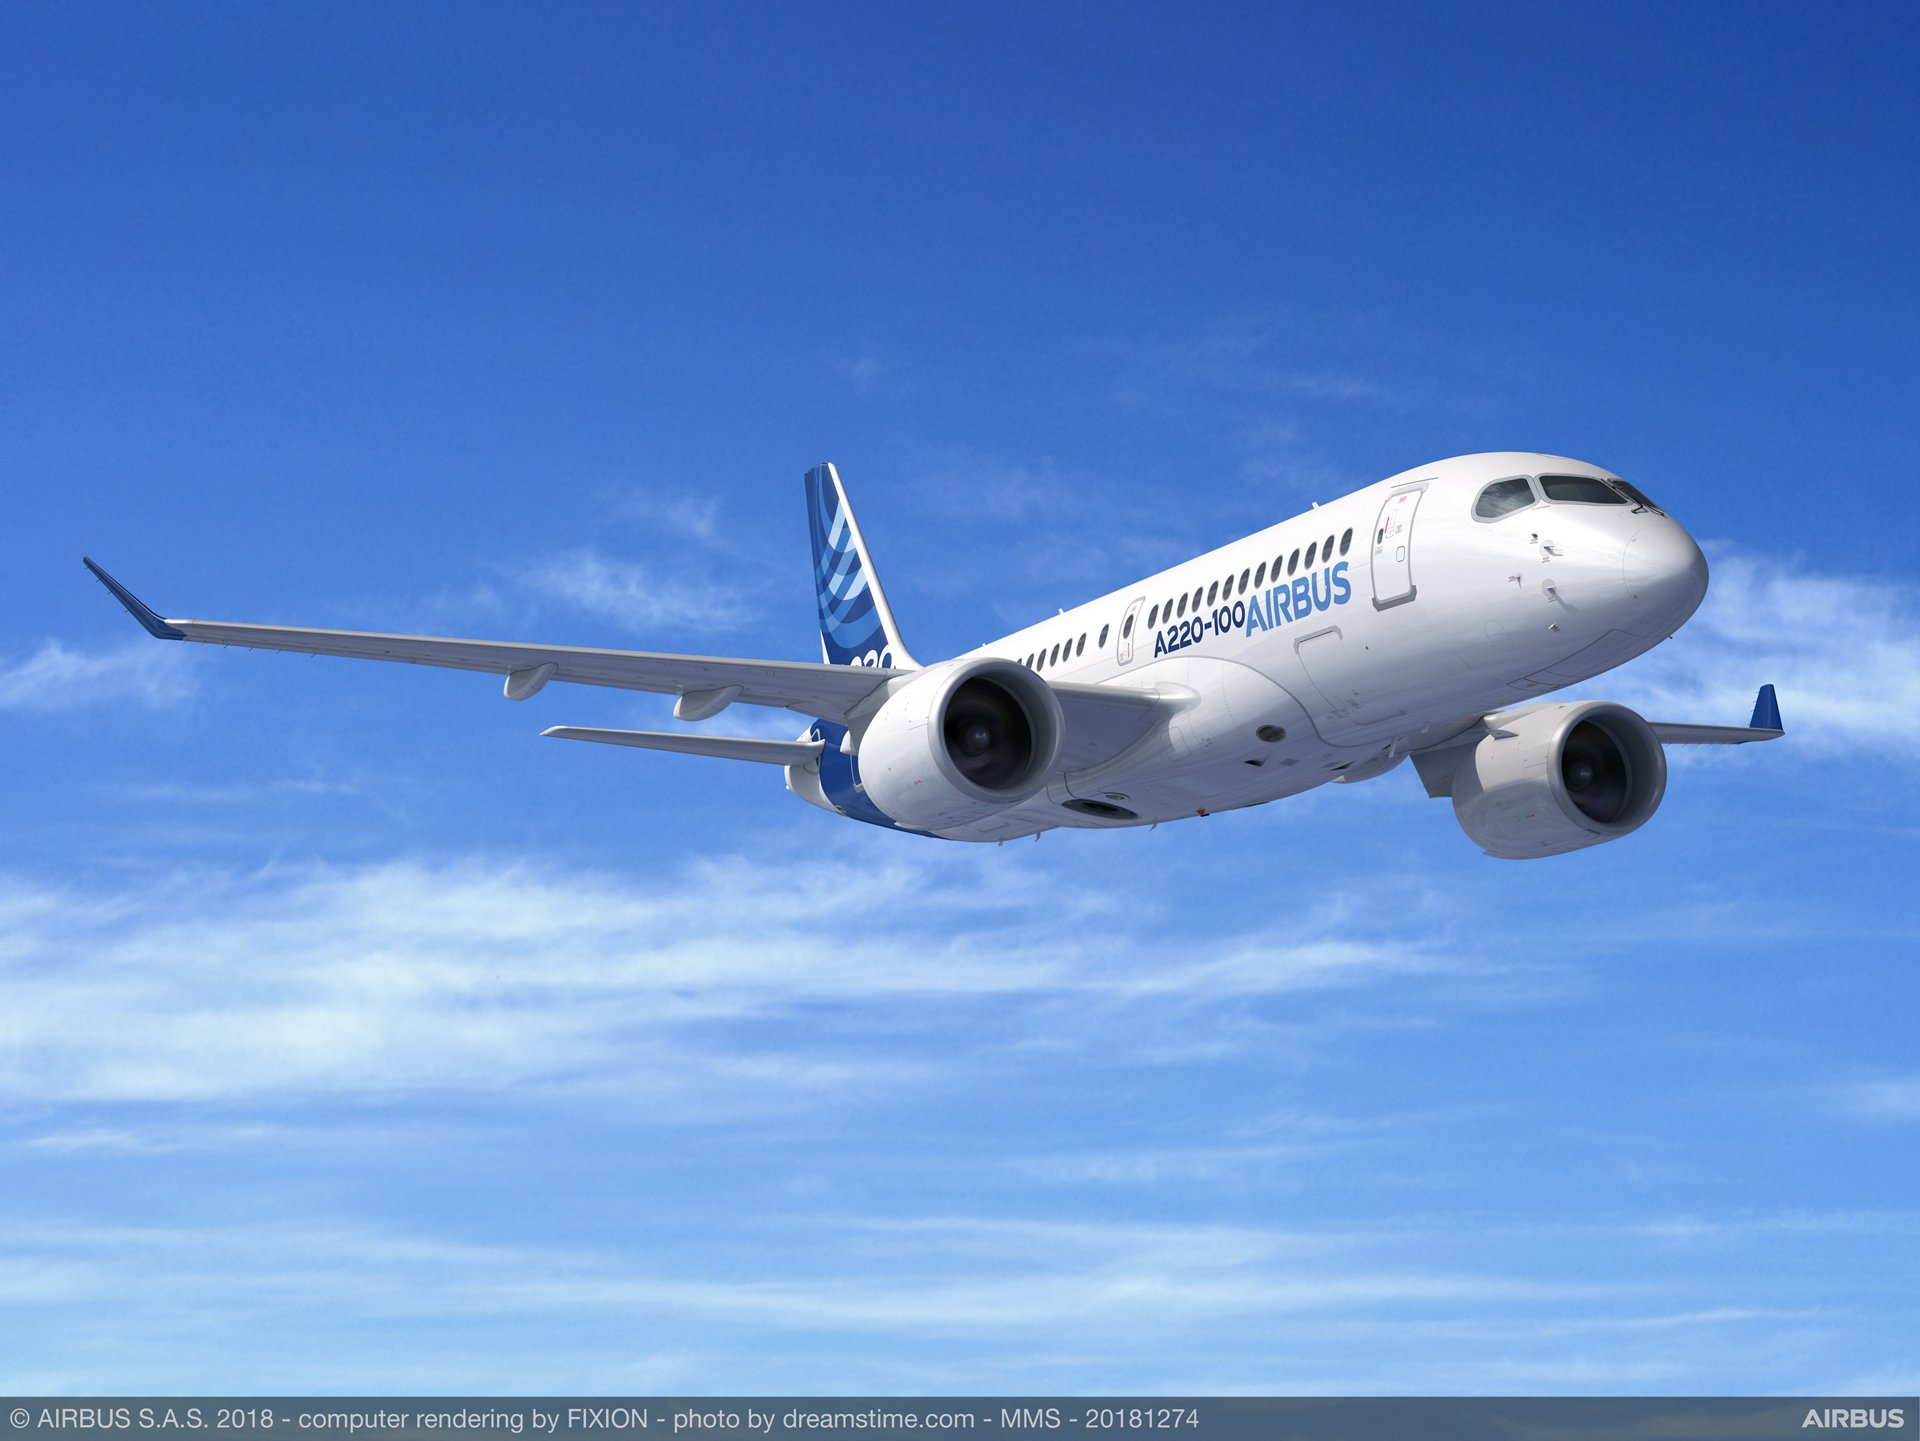 Construction begins on Airbus' U.S. A220 Manufacturing Facility